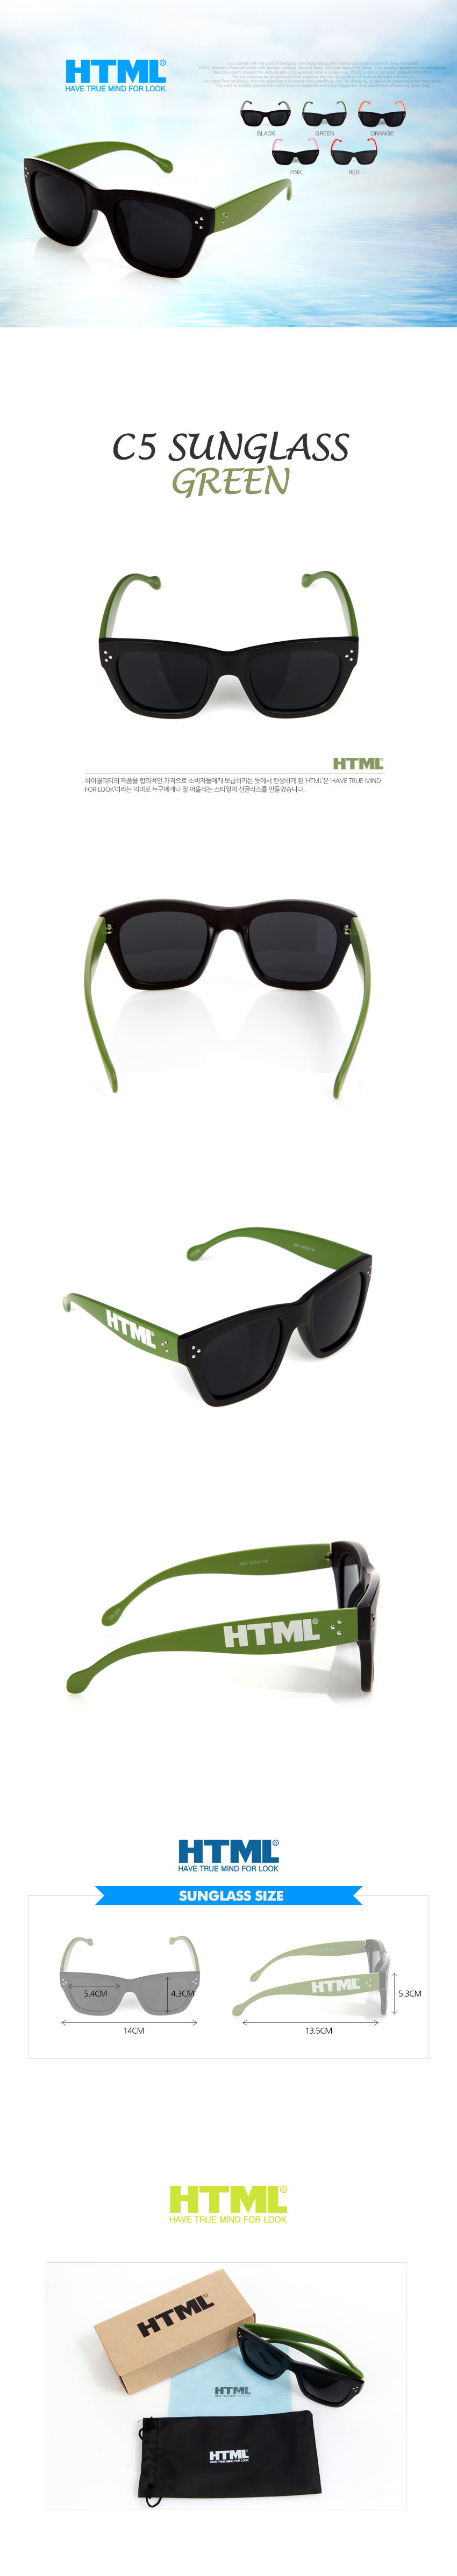 [에이치티엠엘] HTML - C5 sunglass (green)